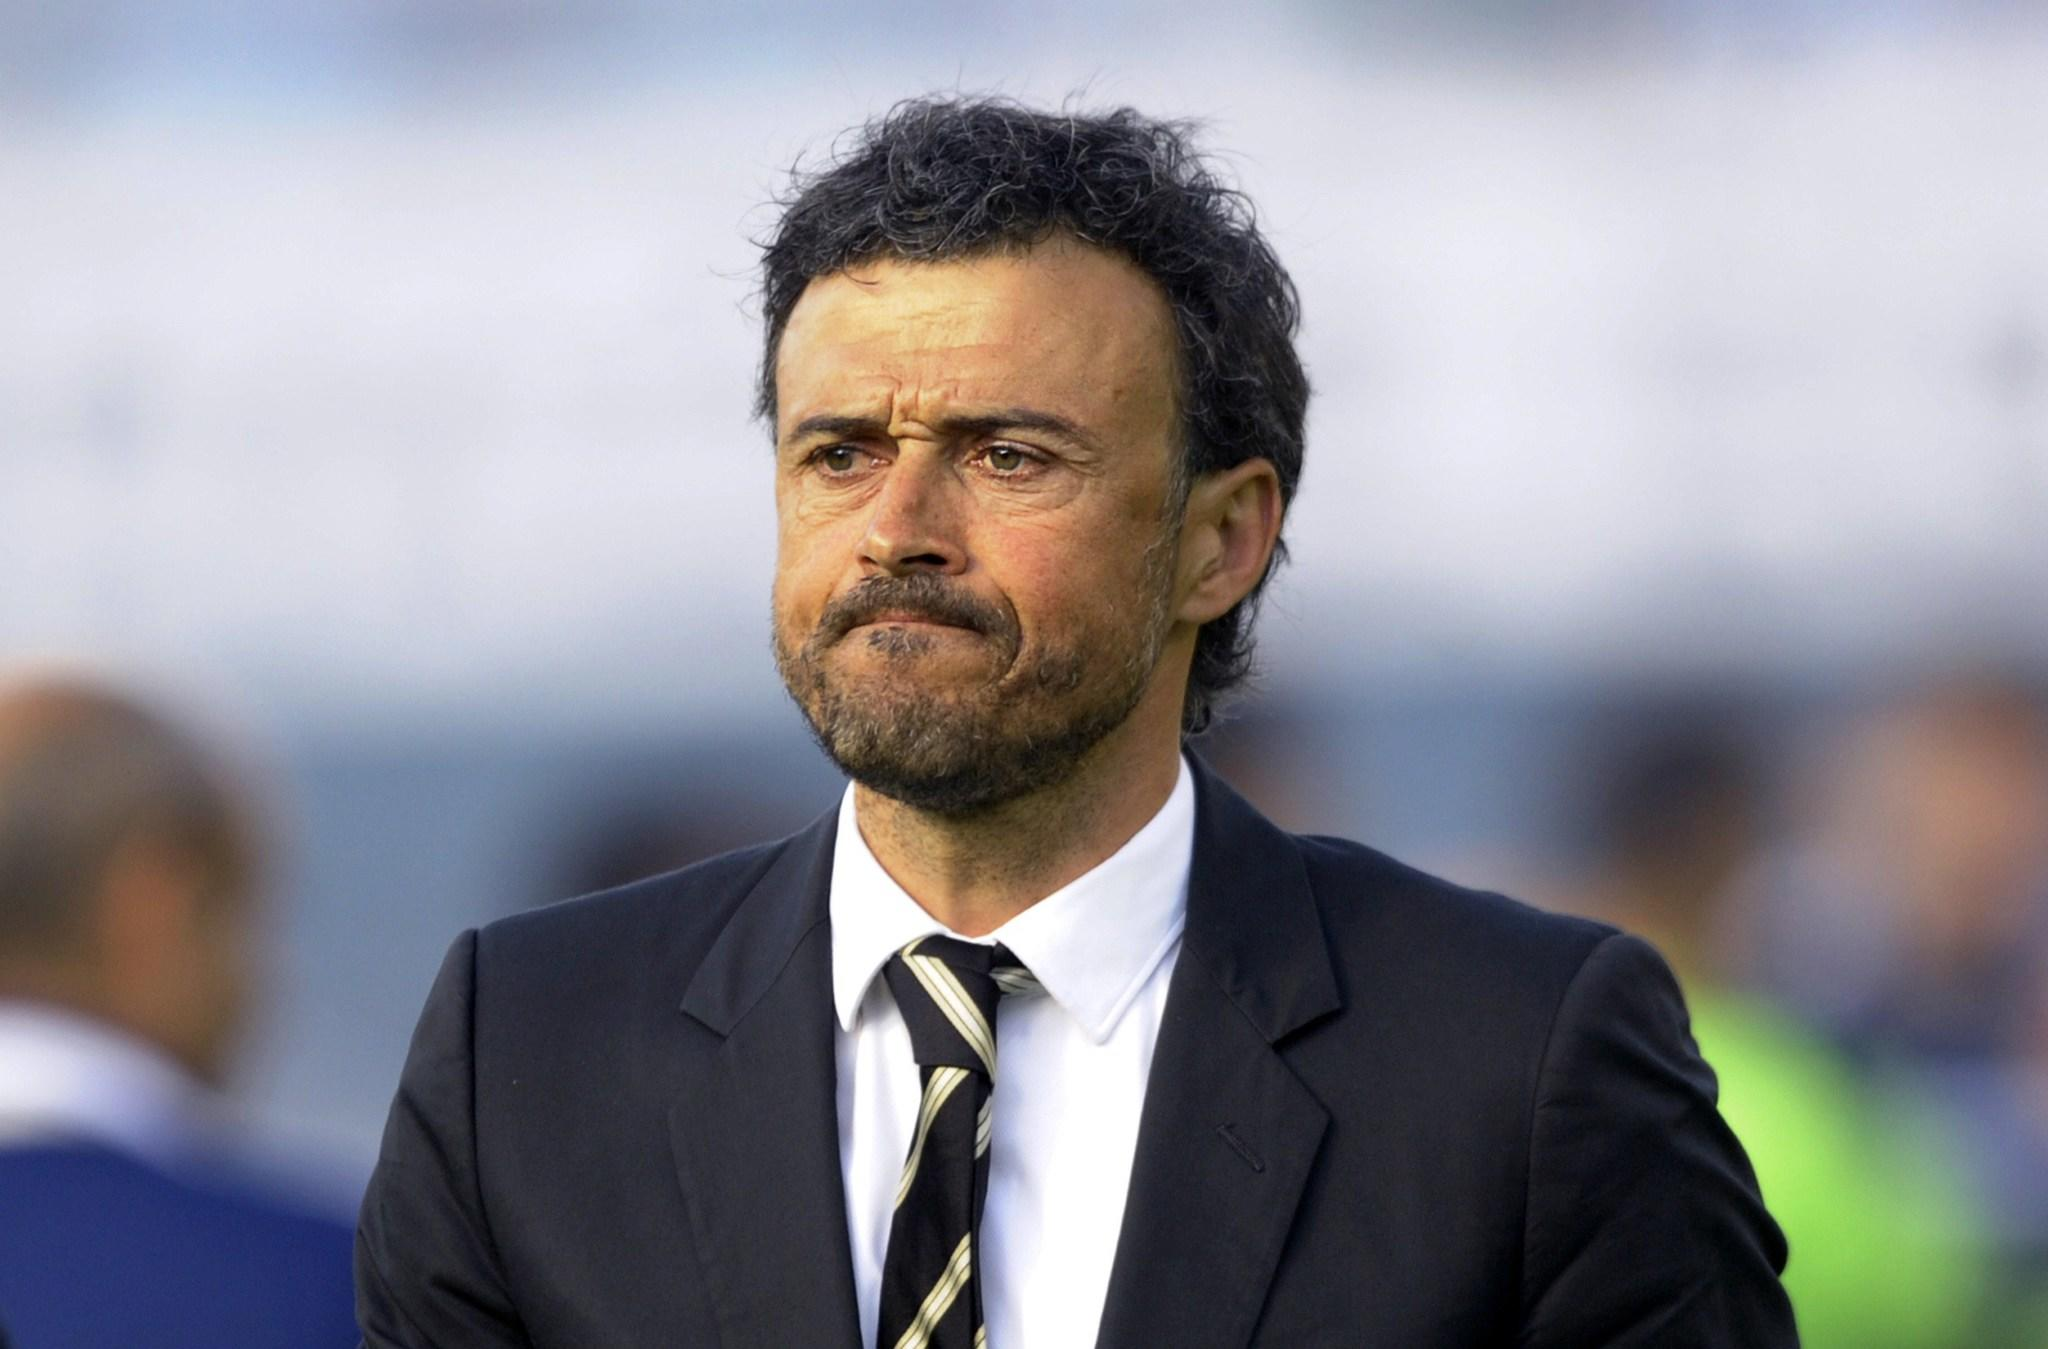 (FILES) A file picture taken on May 11, 2014 shows Celta's coach Luis Enrique leaving the pitch at the end of the Spanish league football match RC Celta de Vigo vs Real Madrid CF at the Balaidos stadium in Vigo. Barcelona name Luis Enrique as new coach on May 19, 2014. Just two days after ending a first season in six years without a major trophy, Barcelona have turned to one of their own in former captain Luis Enrique to restore the glory days at the Camp Nou. AFP PHOTO/ MIGUEL RIOPAMIGUEL RIOPA/AFP/Getty Images ORG XMIT: